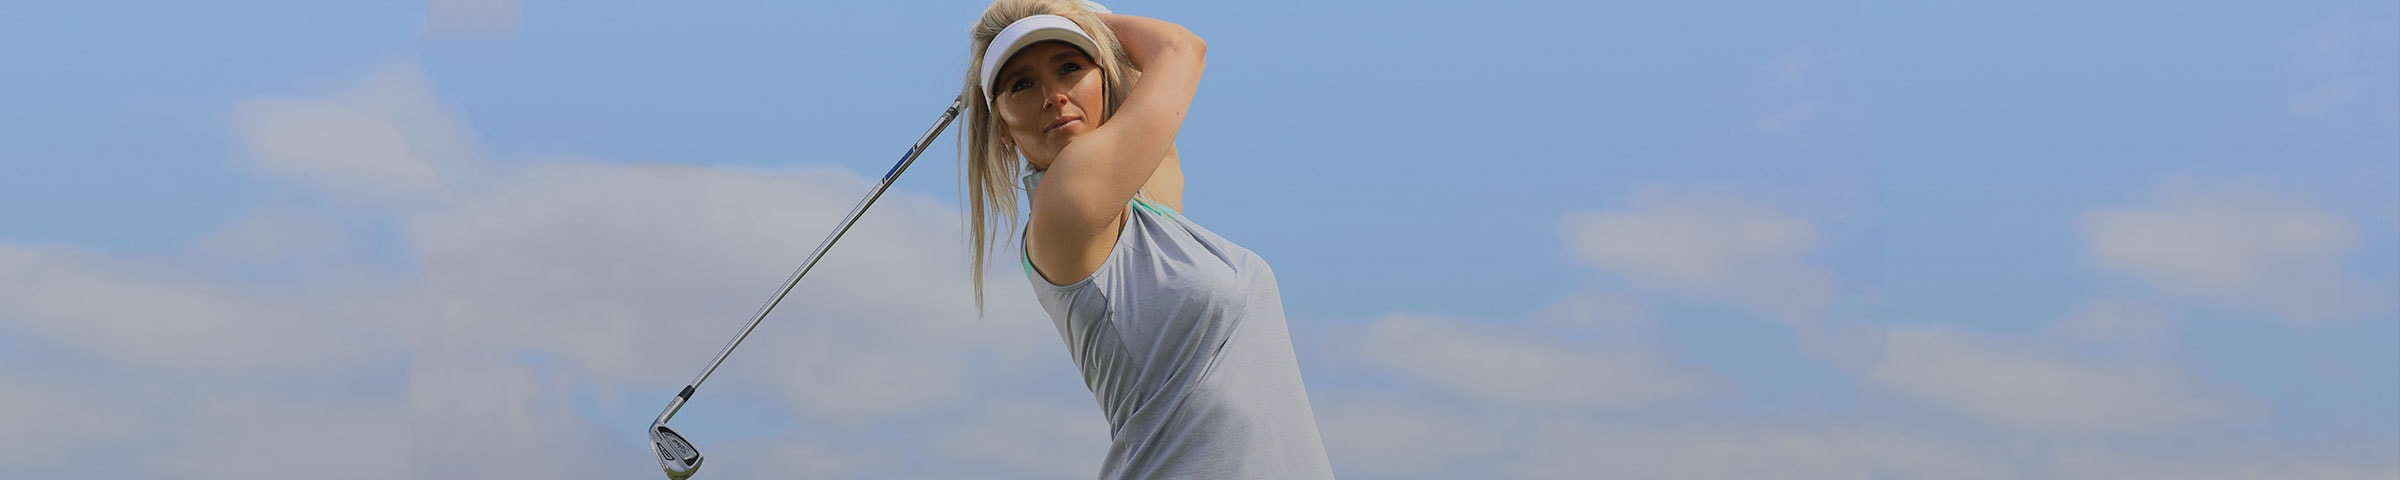 WOMEN'S GOLF CLOTHING